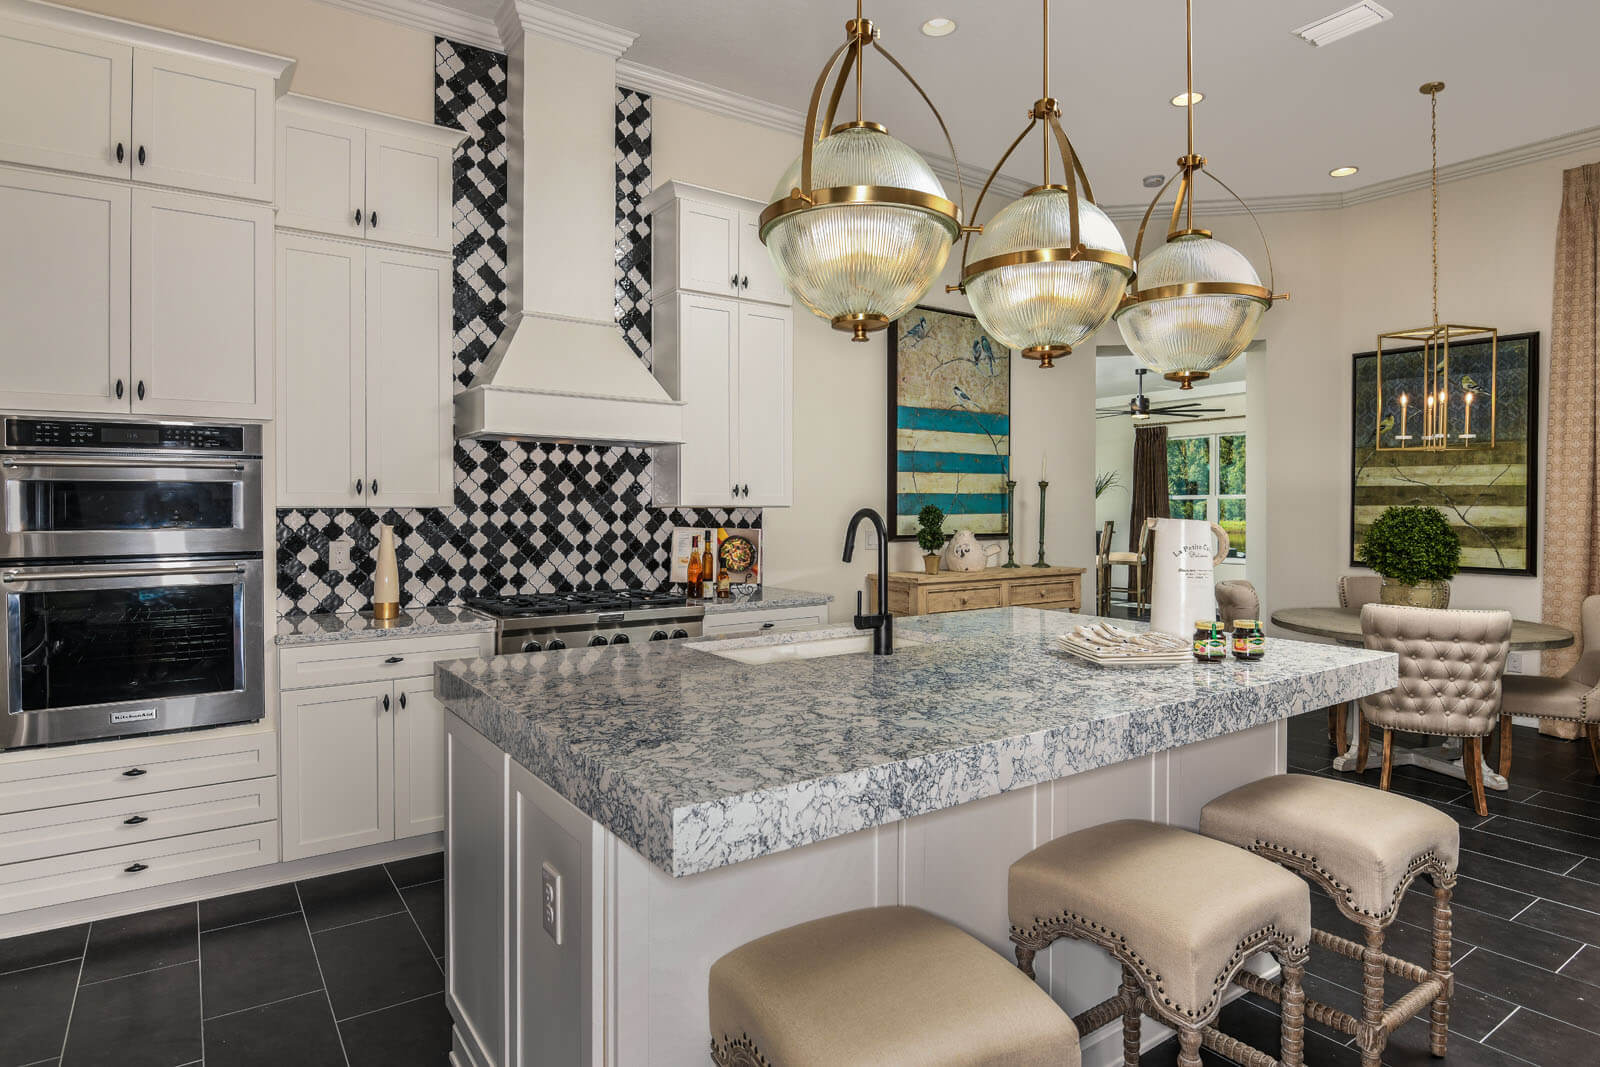 New Tampa  Model Home Savannah in Bexley, located at 4081 Epic Cove, Land O' Lakes Built By Cardel Homes Tampa